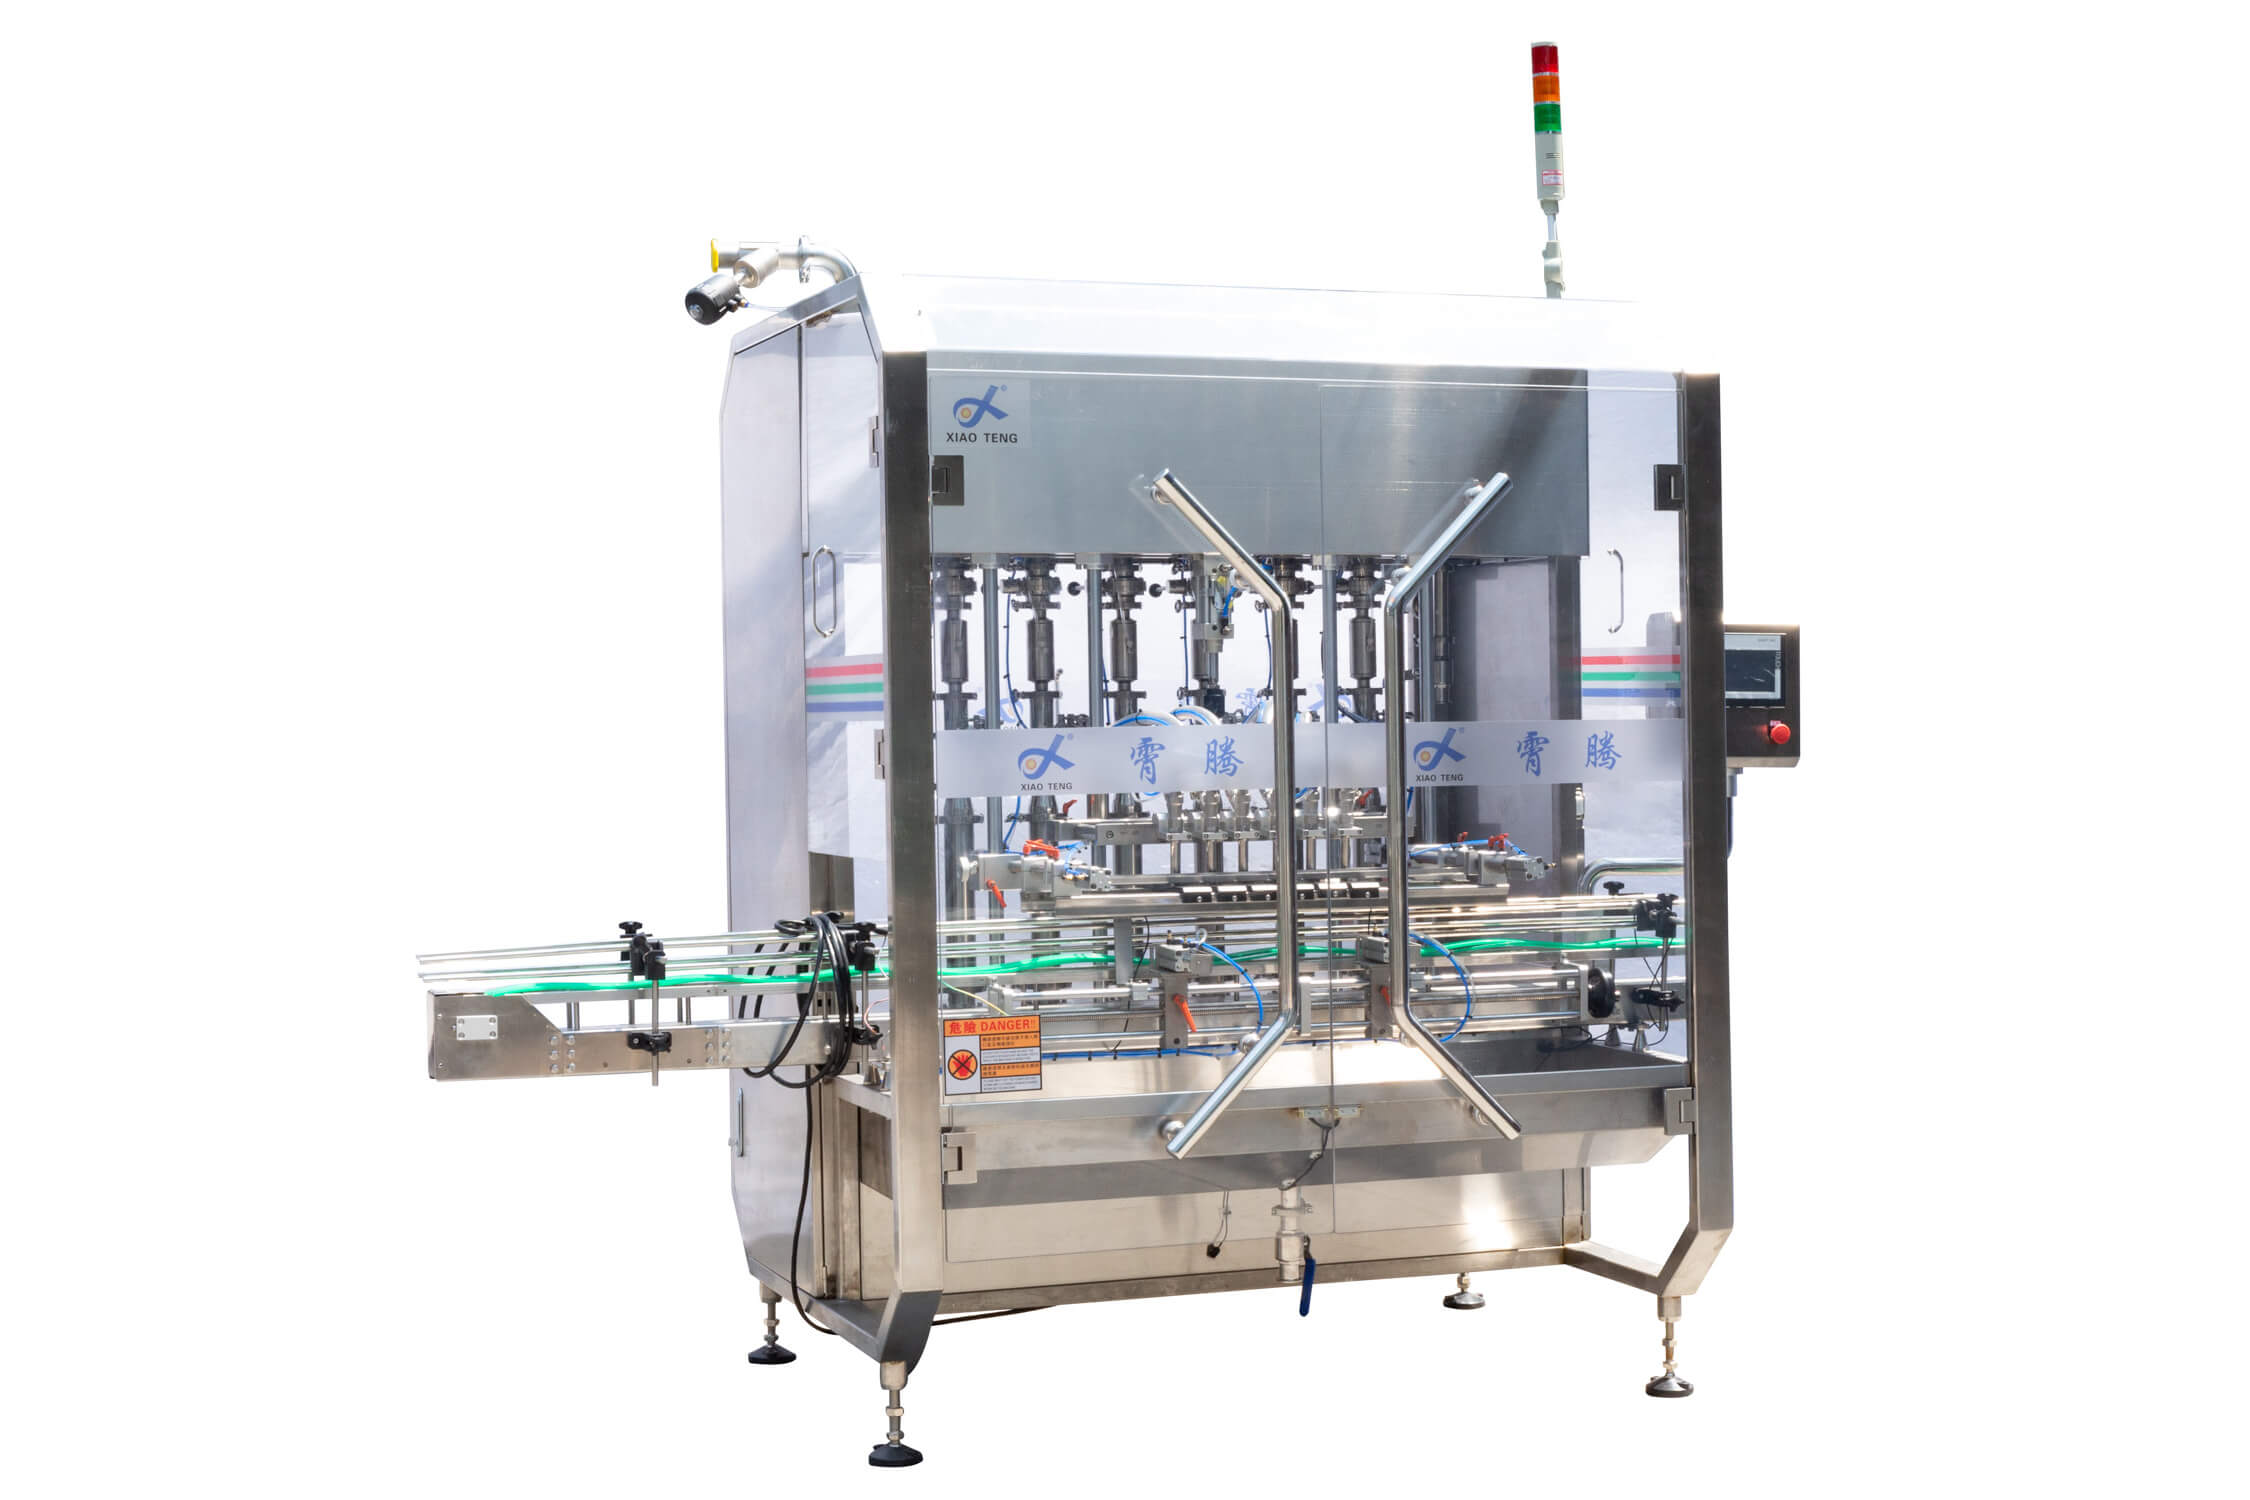 6 Heads Automatic Piston Filling Machine